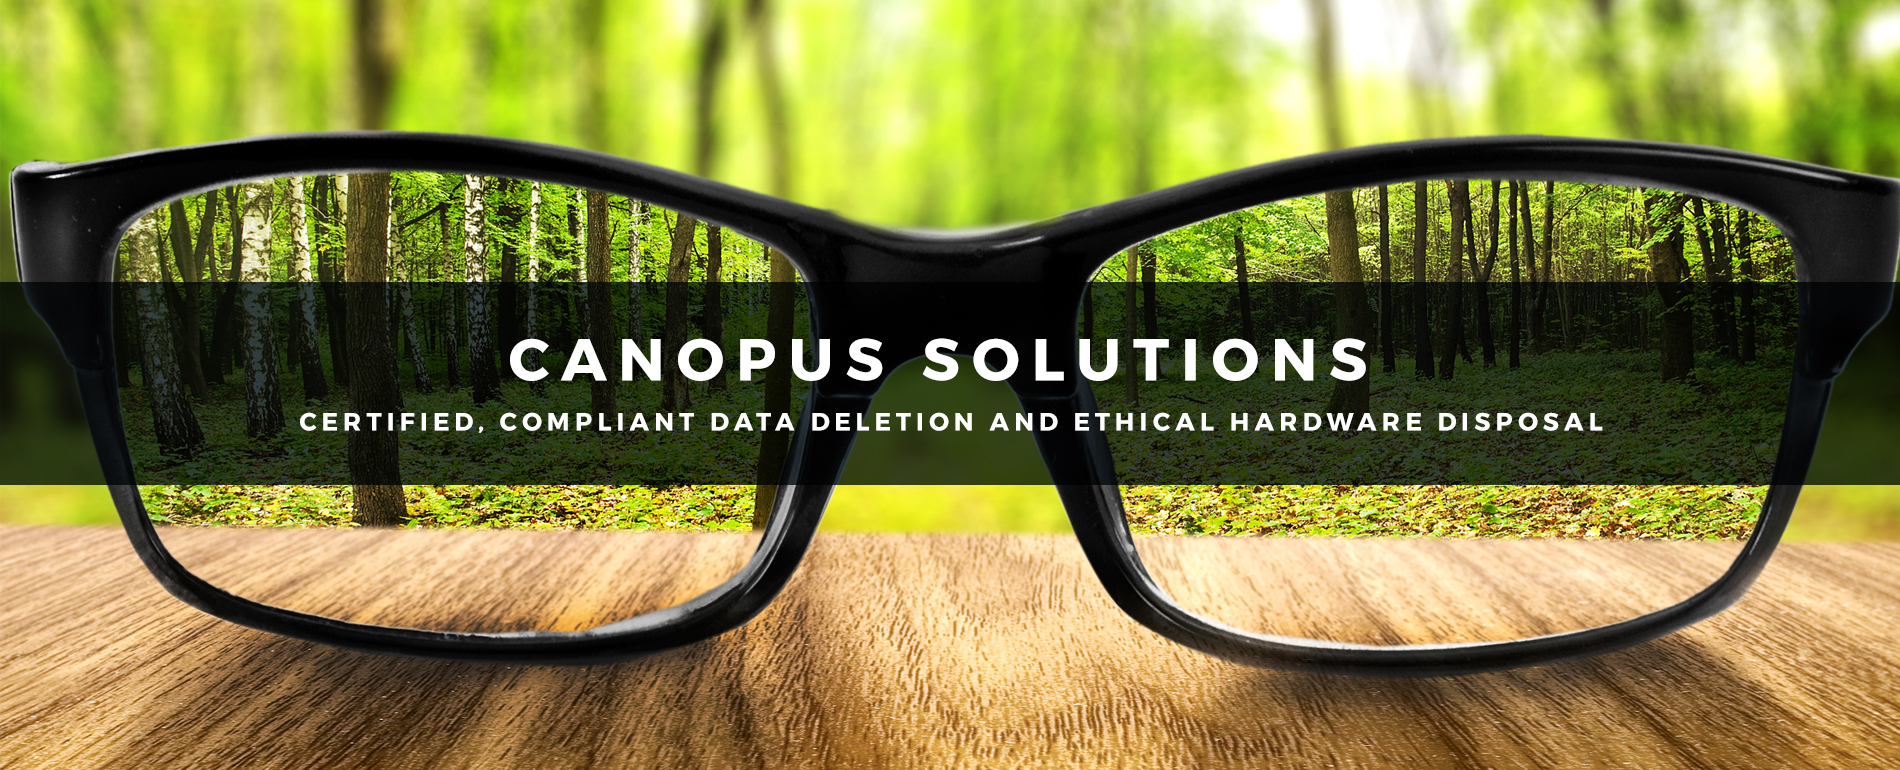 Canopus solutions